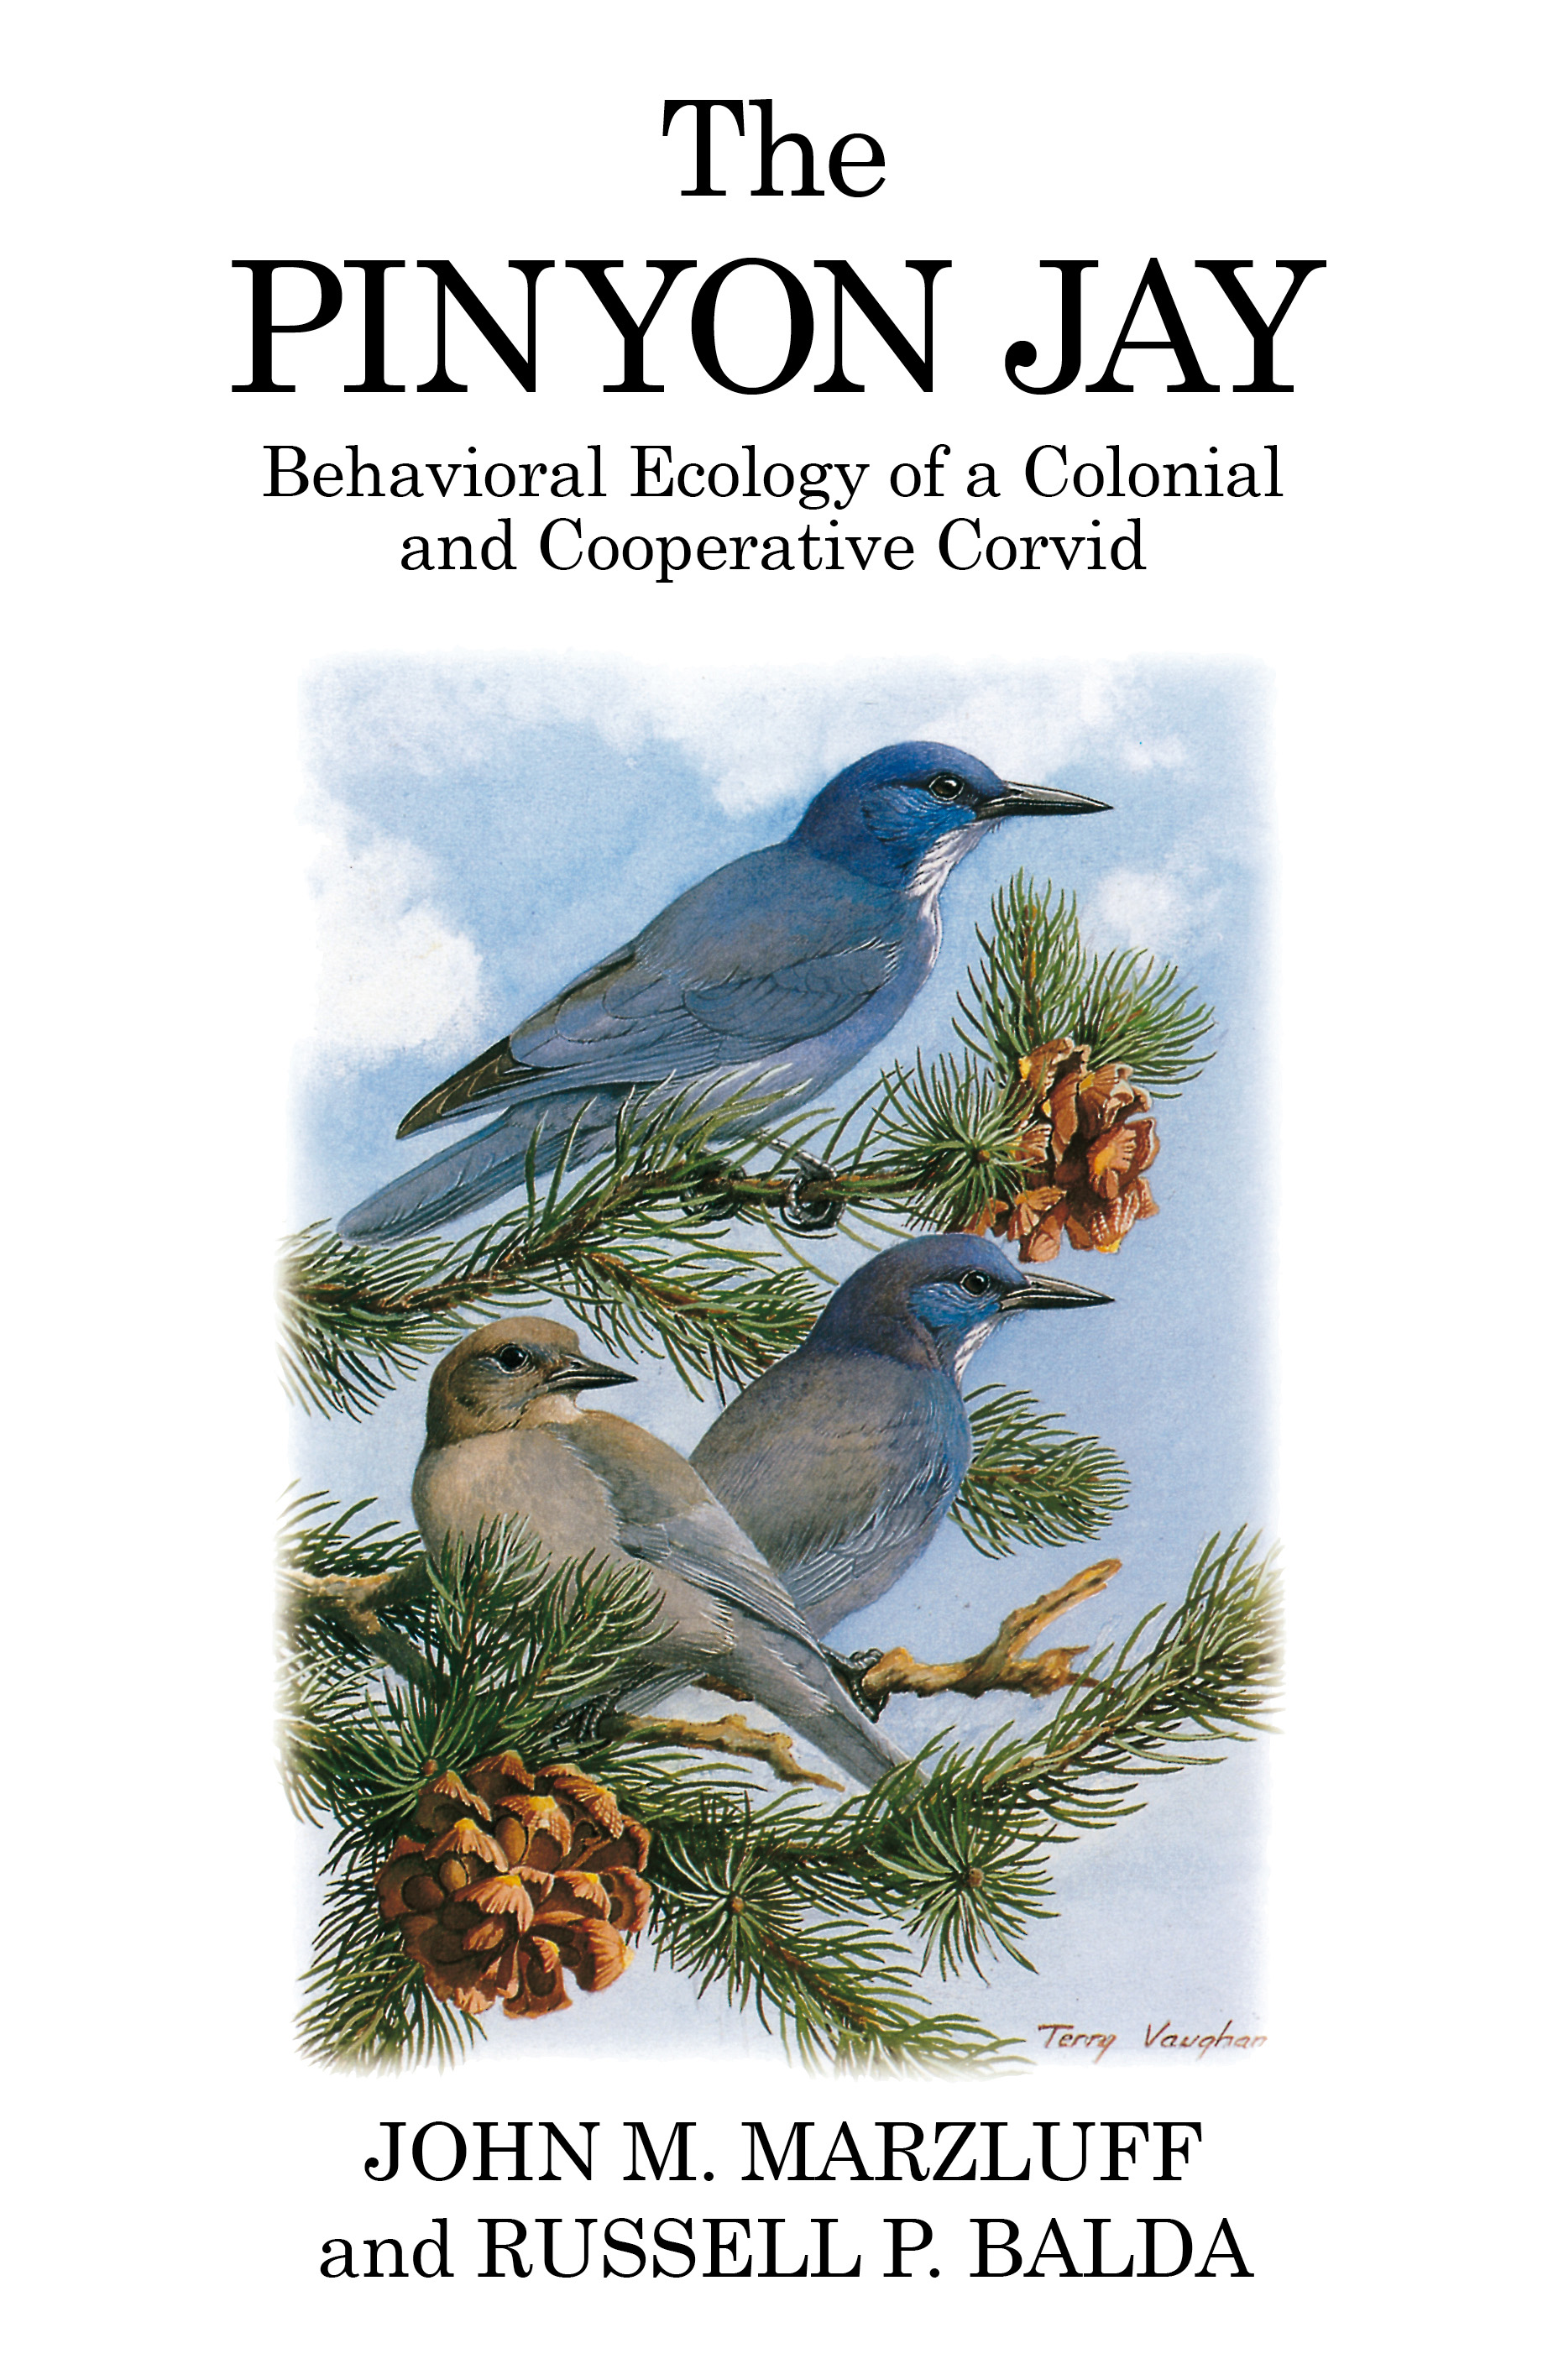 The Pinyon Jay Behavioral ecology of a colonial and cooperative corvid